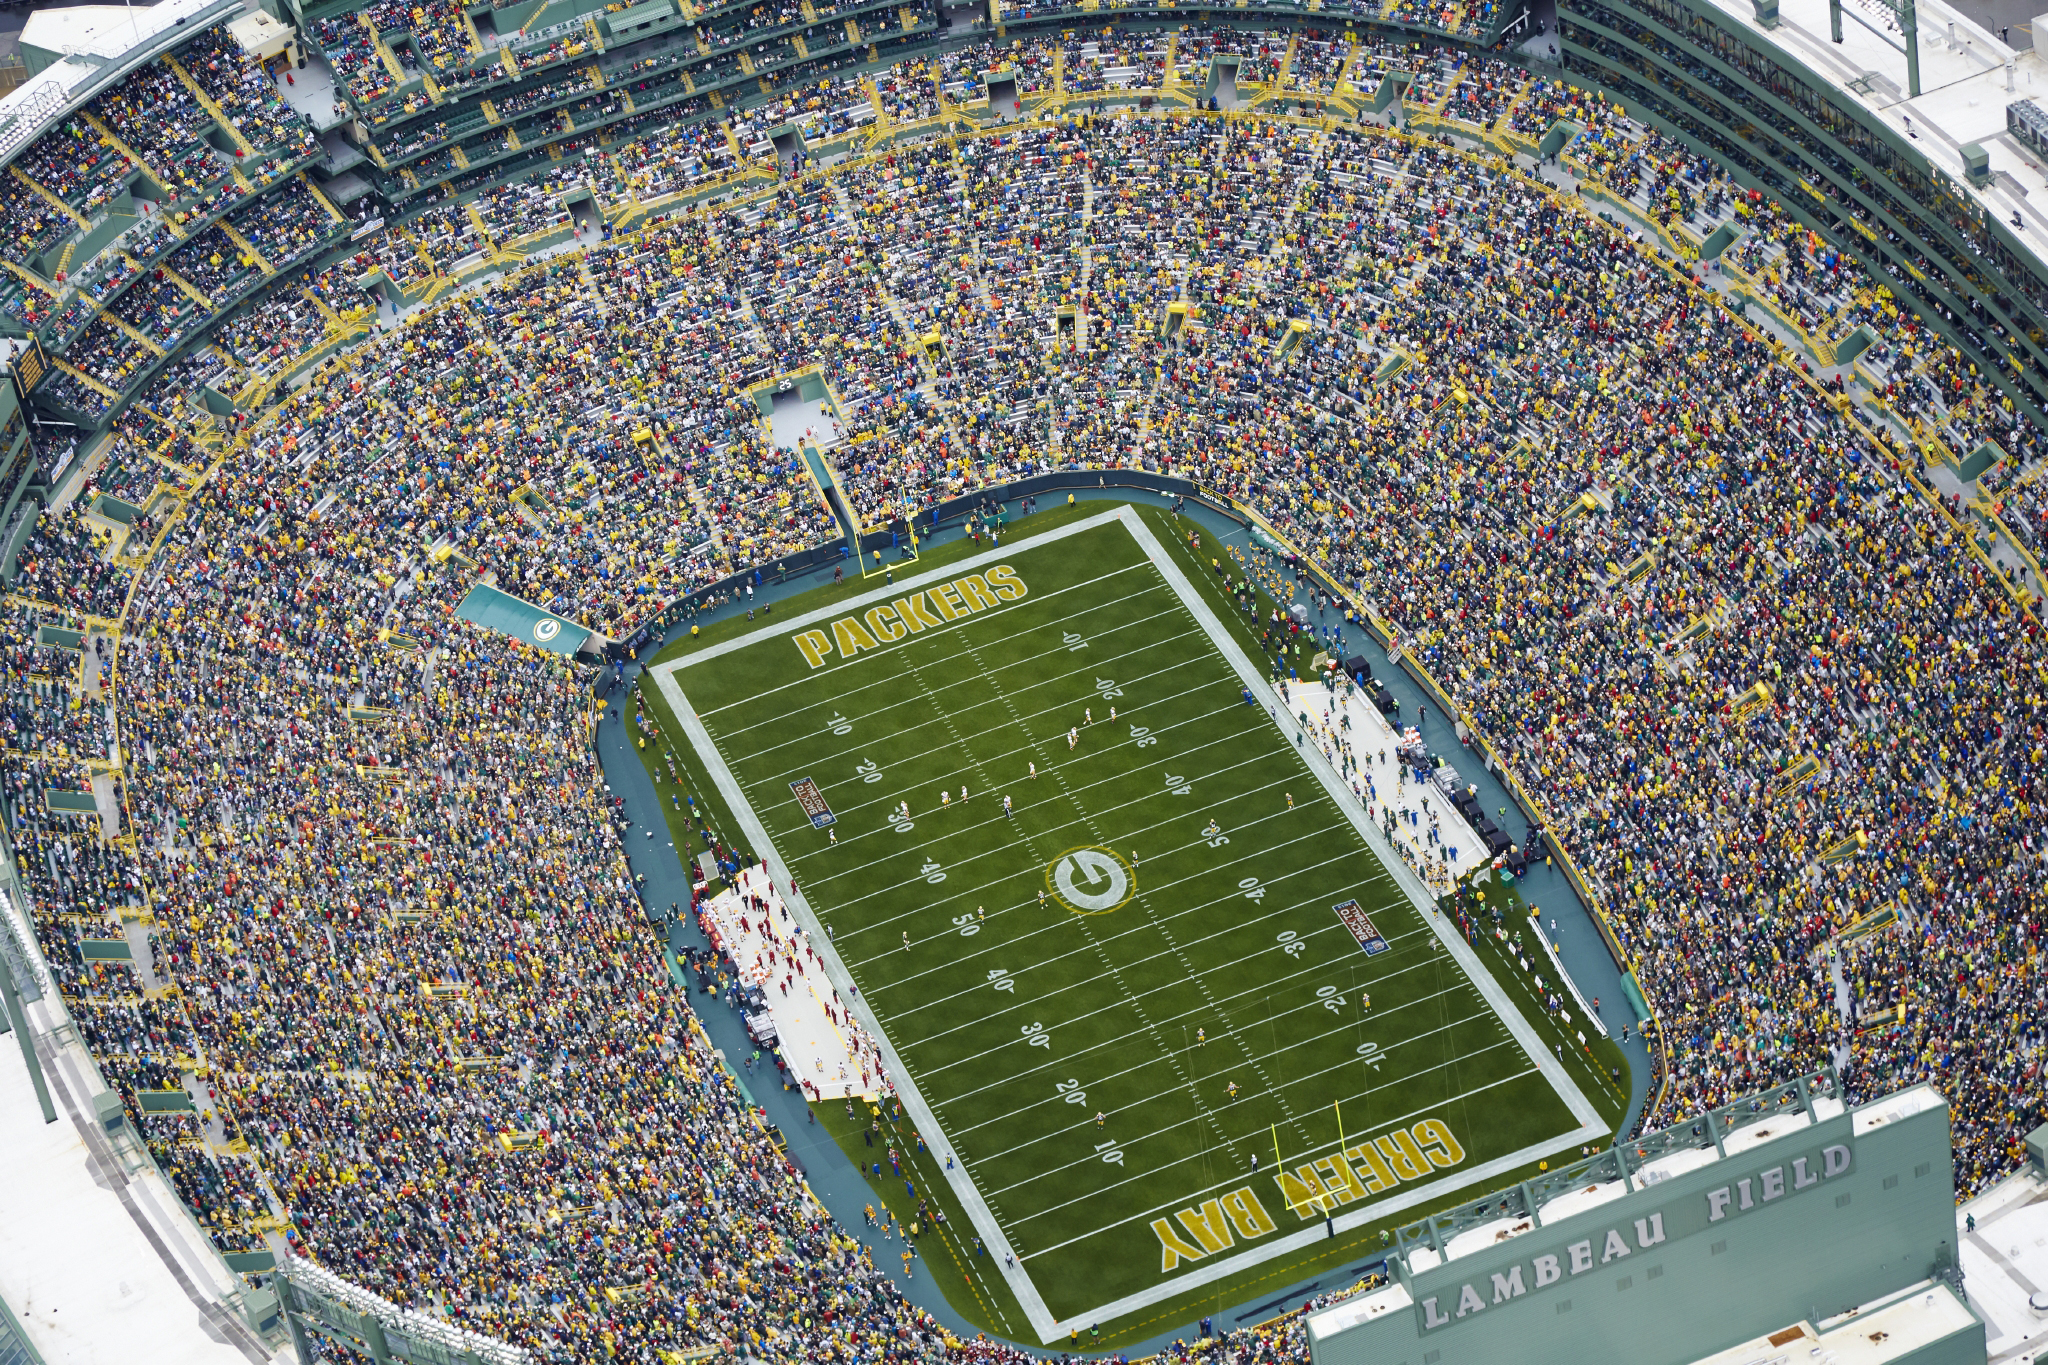 Green Bay Packers Select VITEC s Award Winning IPTV HD Video Solution for Lambeau Field Broadcasting & Cable